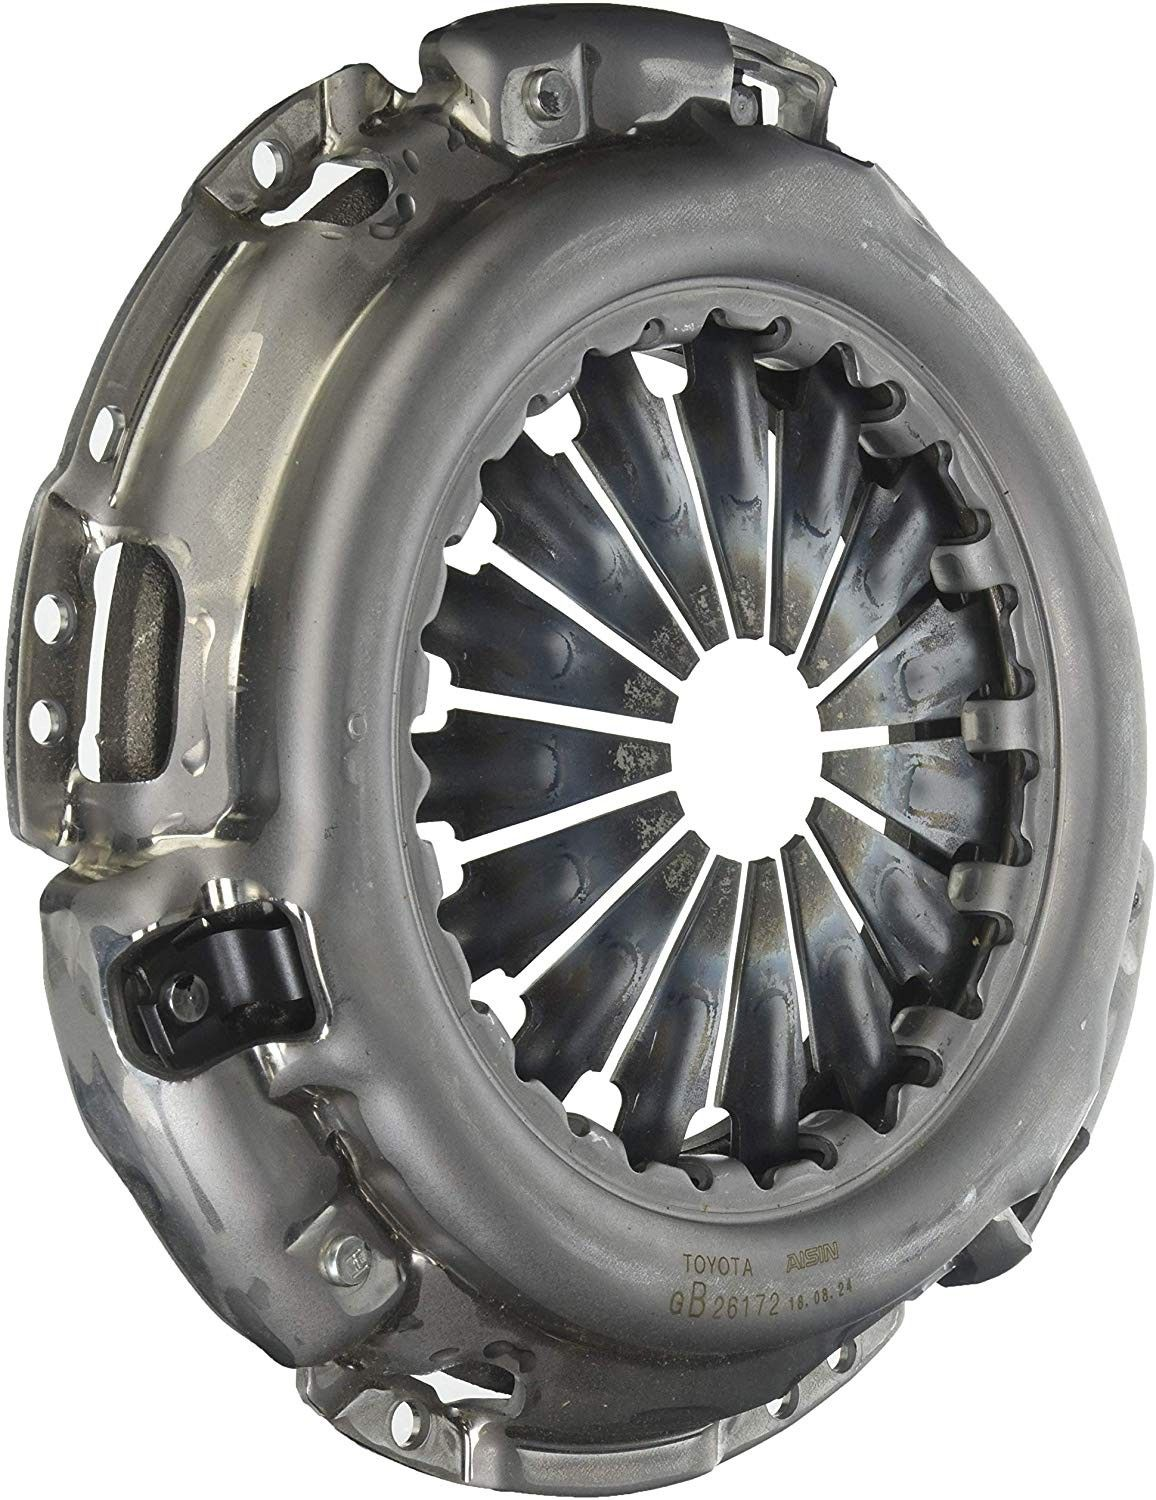 Luk Clutch Pressure Plate For TATA 2515 GB50 with bearing 352 - 1429234200